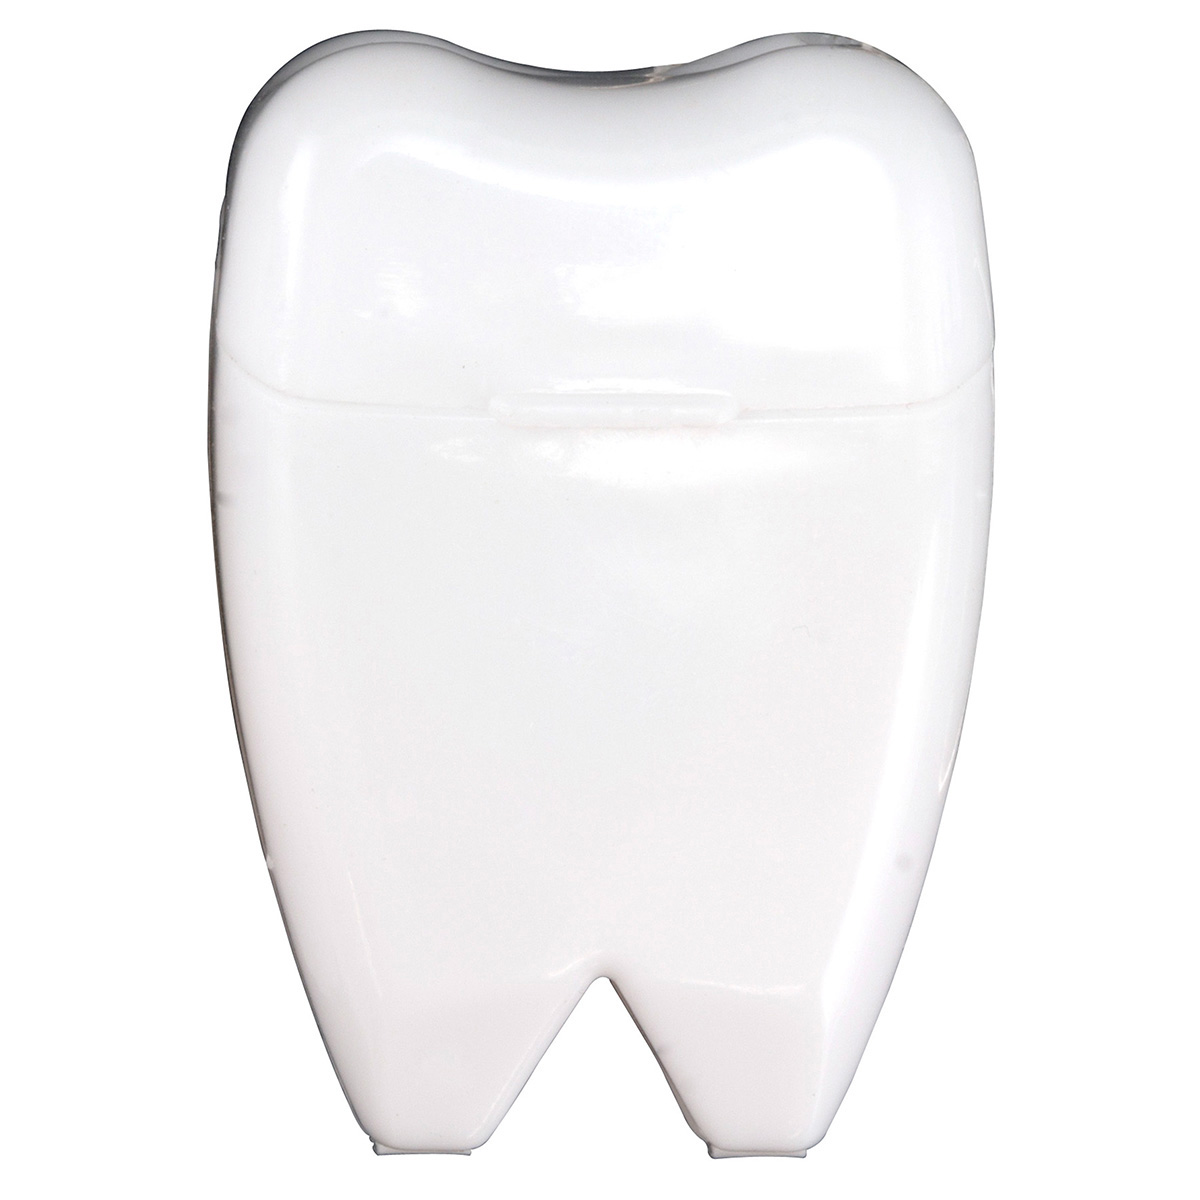 White Tooth Shaped Dental Floss